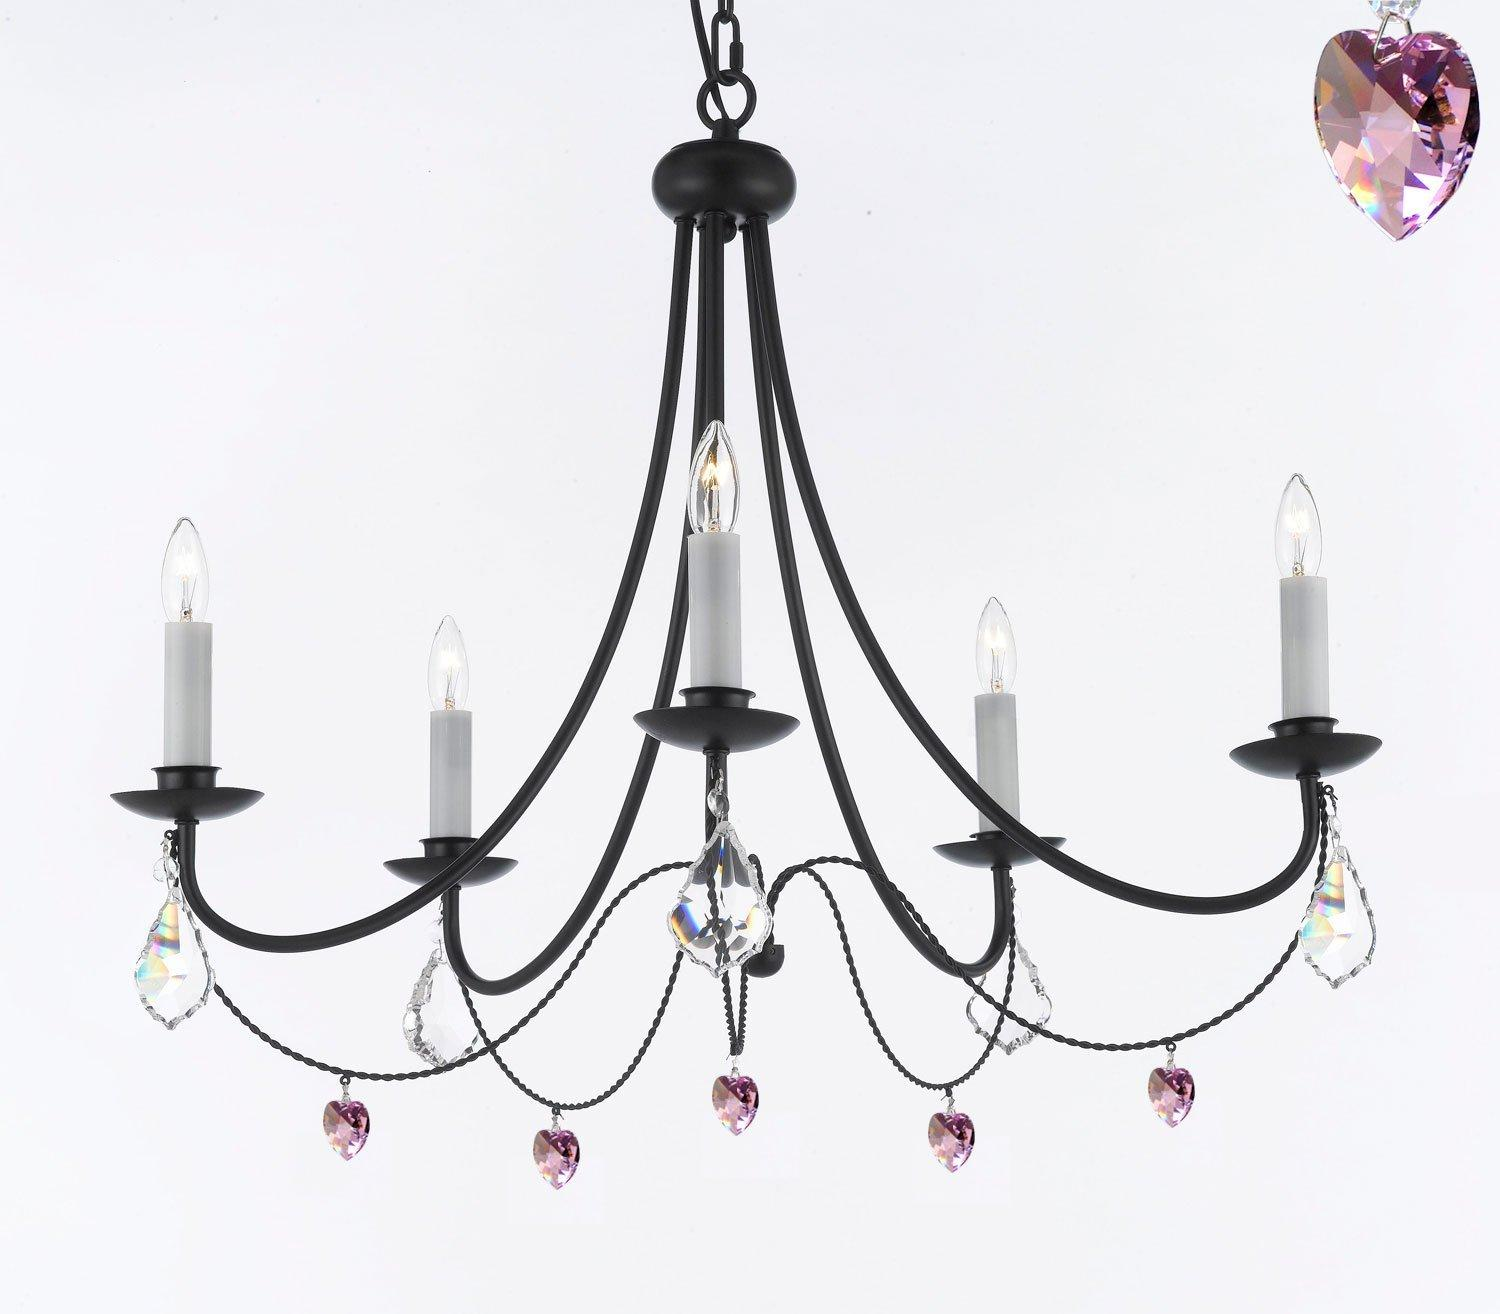 Empress Wrought Iron Crystal Chandelier Lighting H22.5 x W26